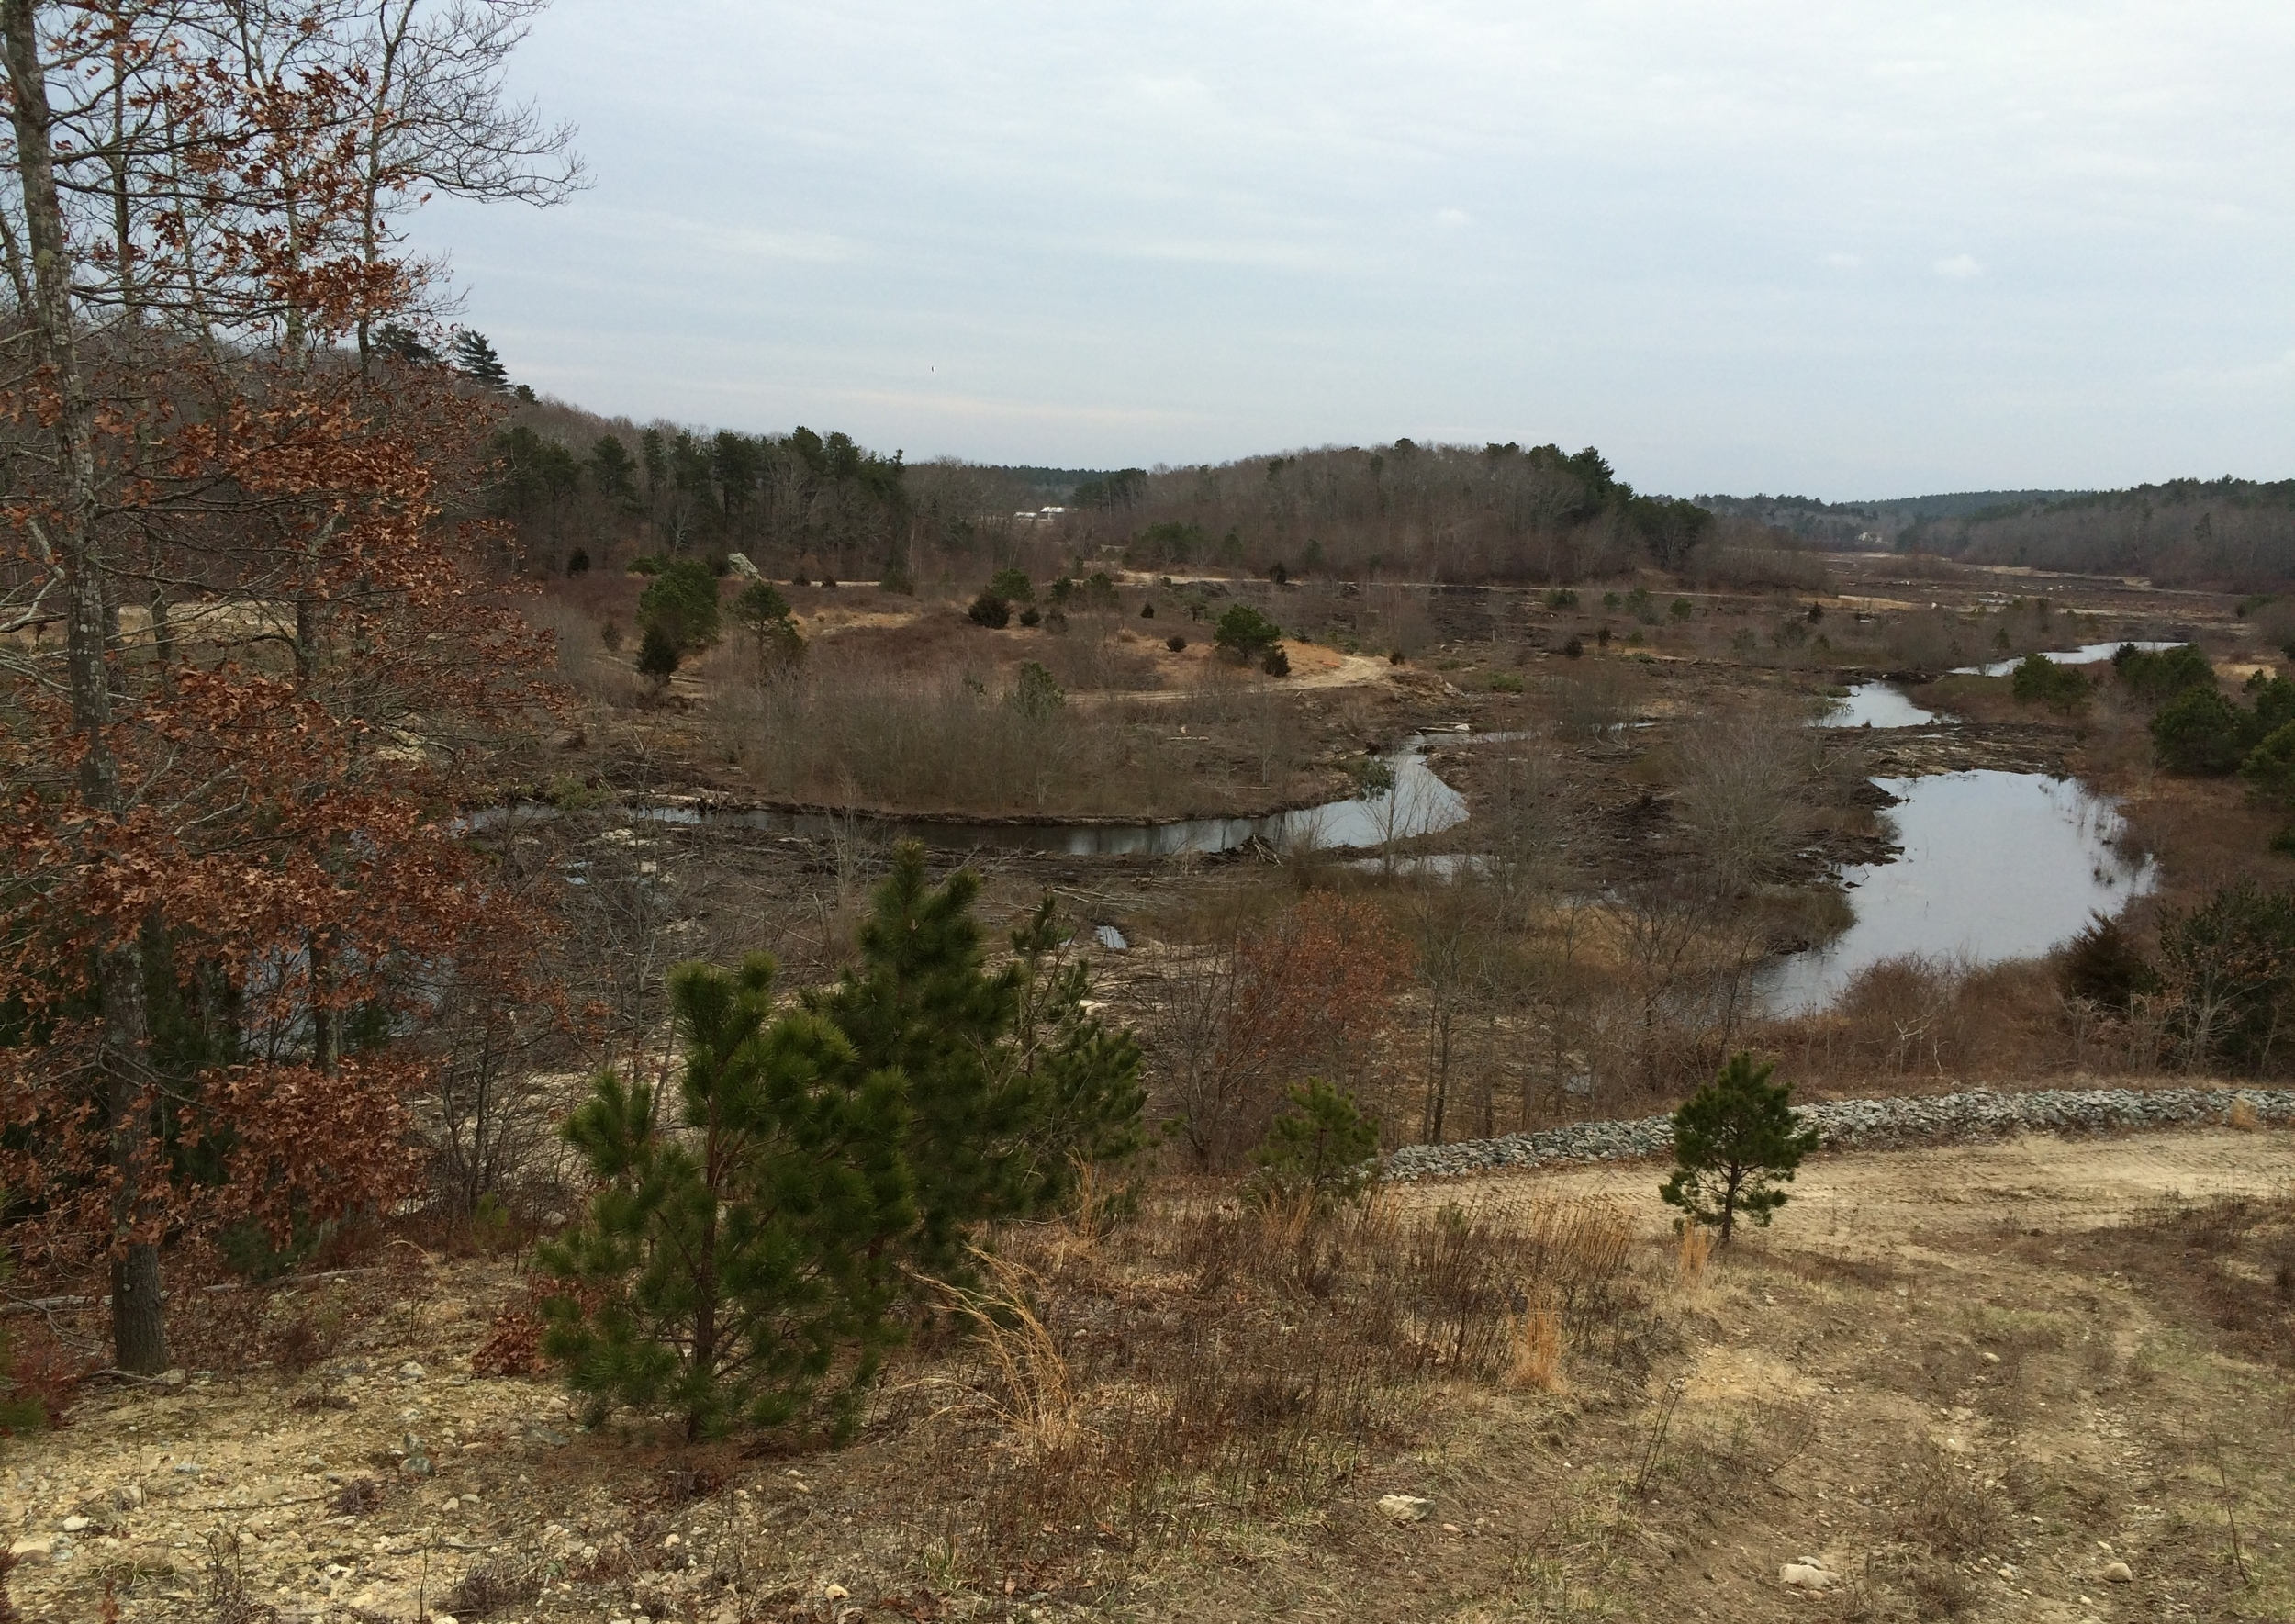 March 8, 2016 | Overview restoration site